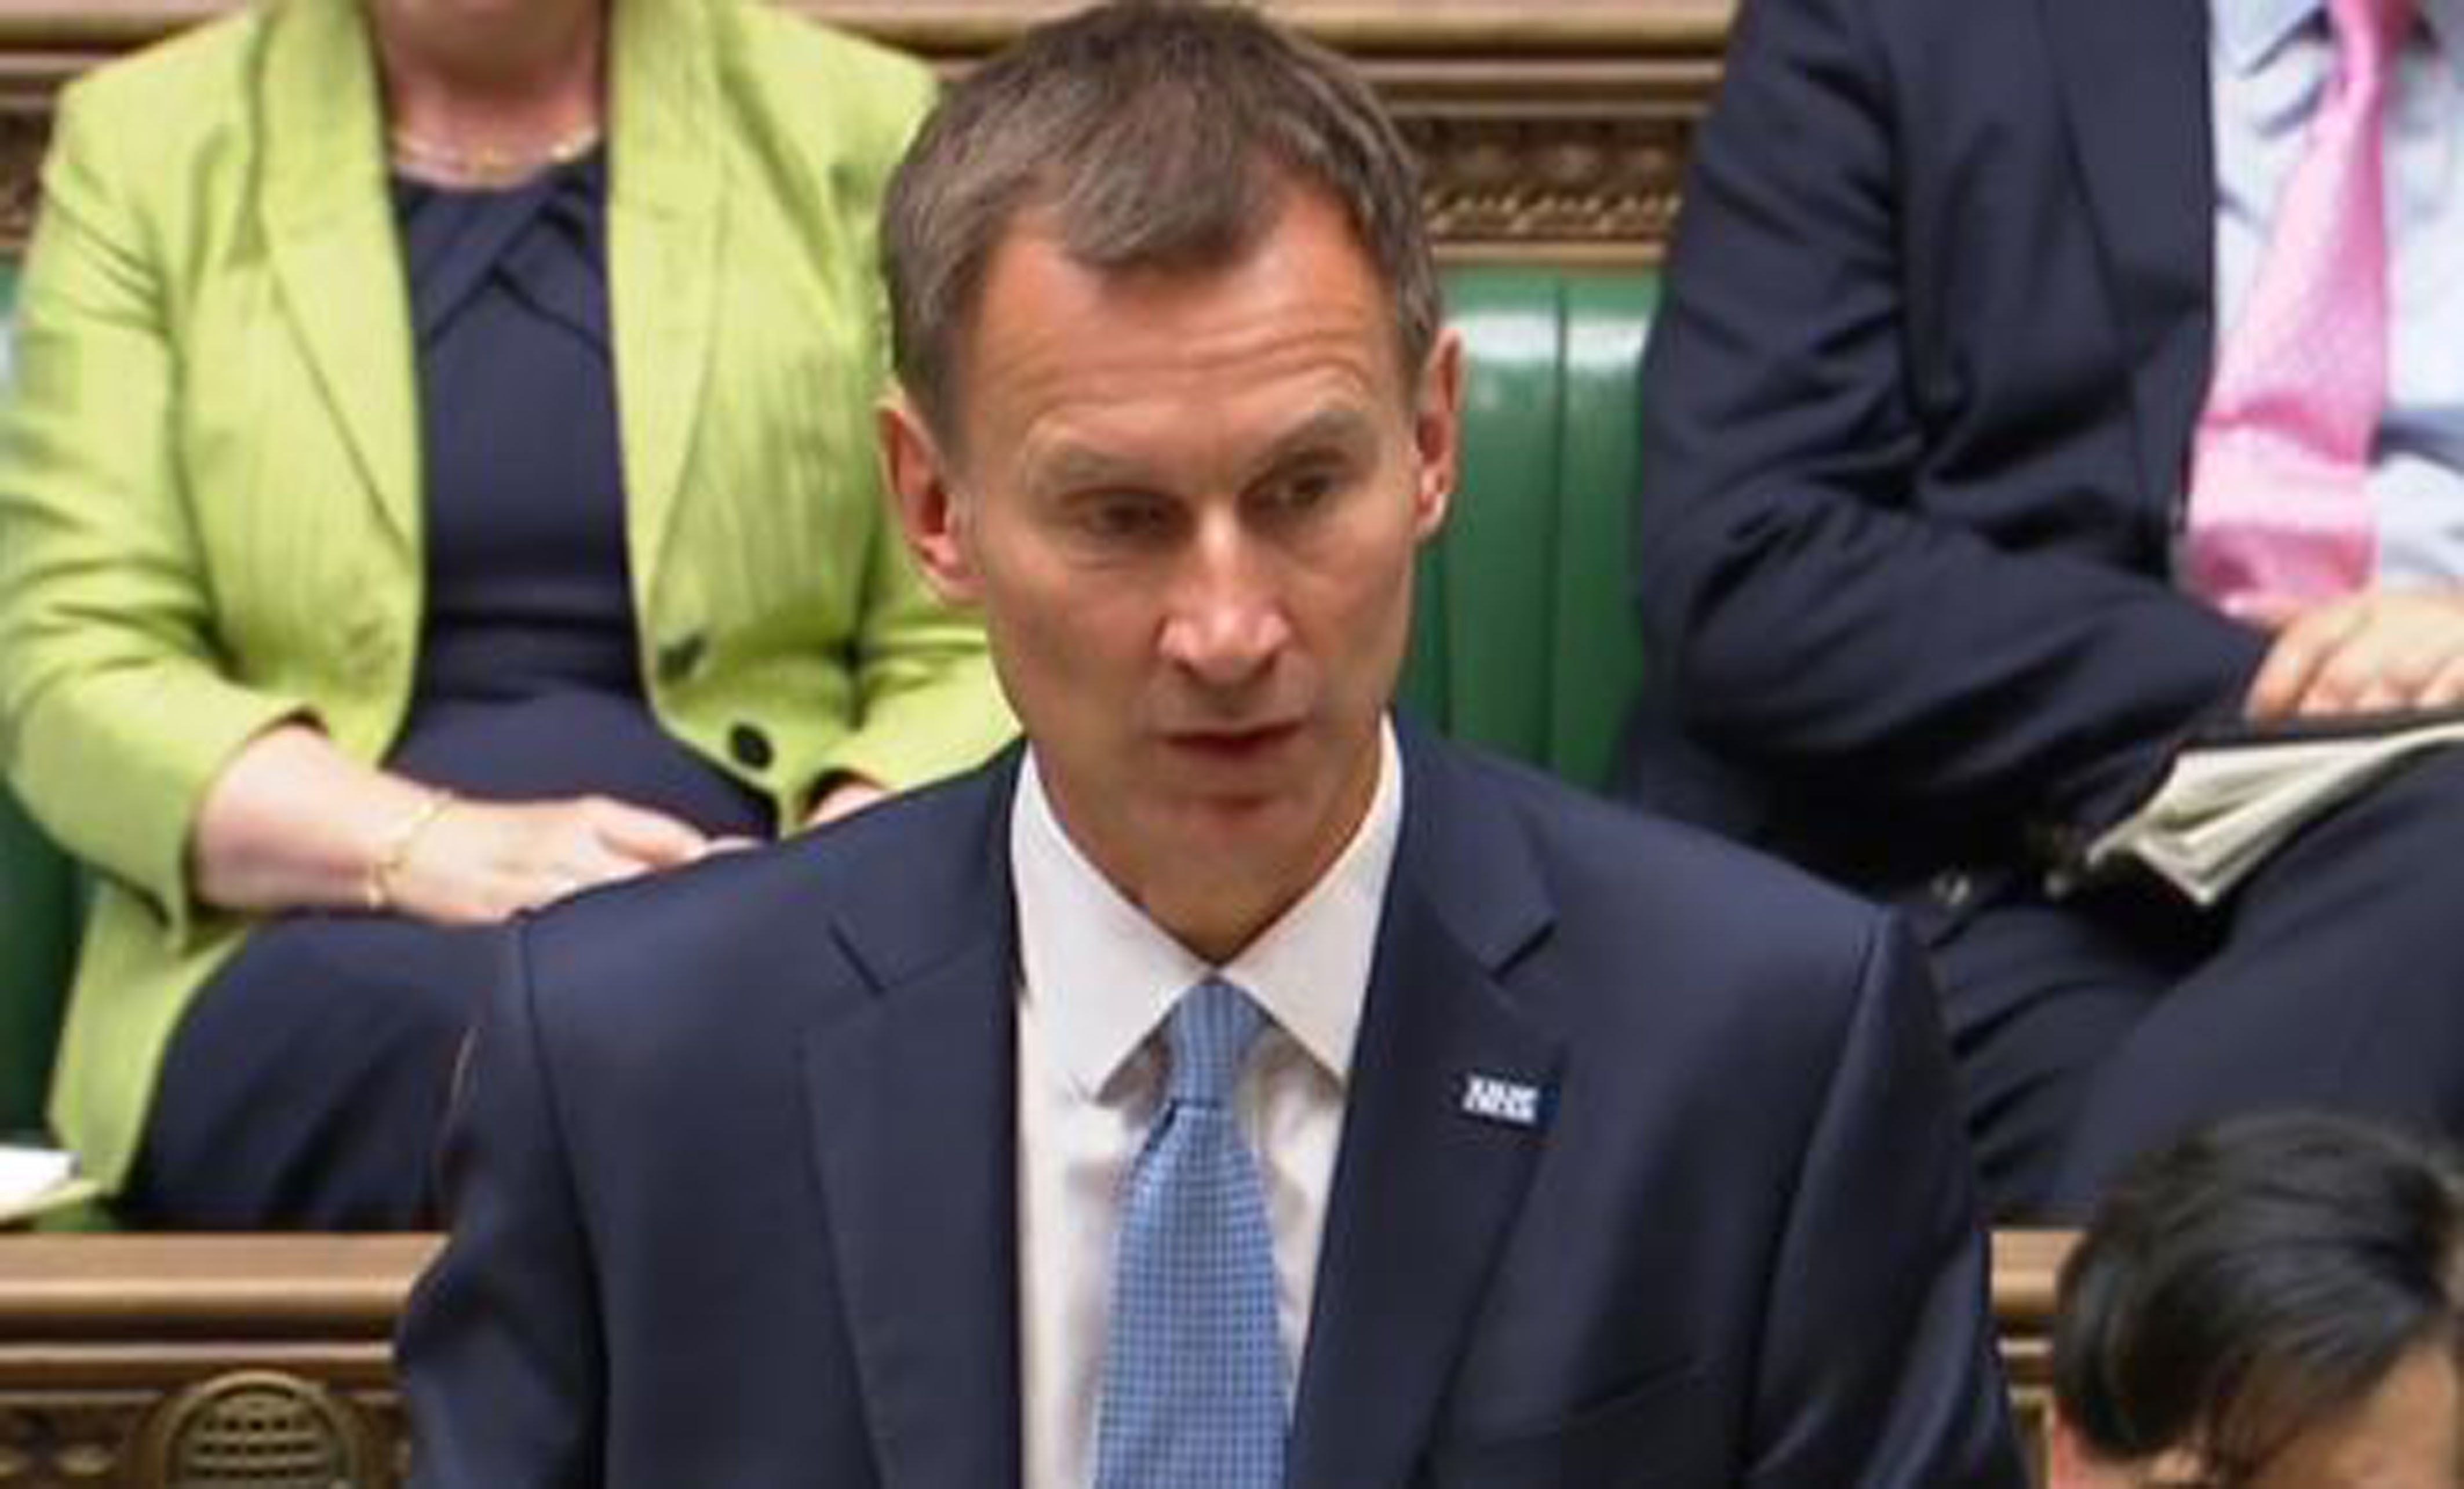 Gosport Hospital Deaths: Theresa May And Jeremy Hunt Apologise To Families Affected By The Opioid Drug